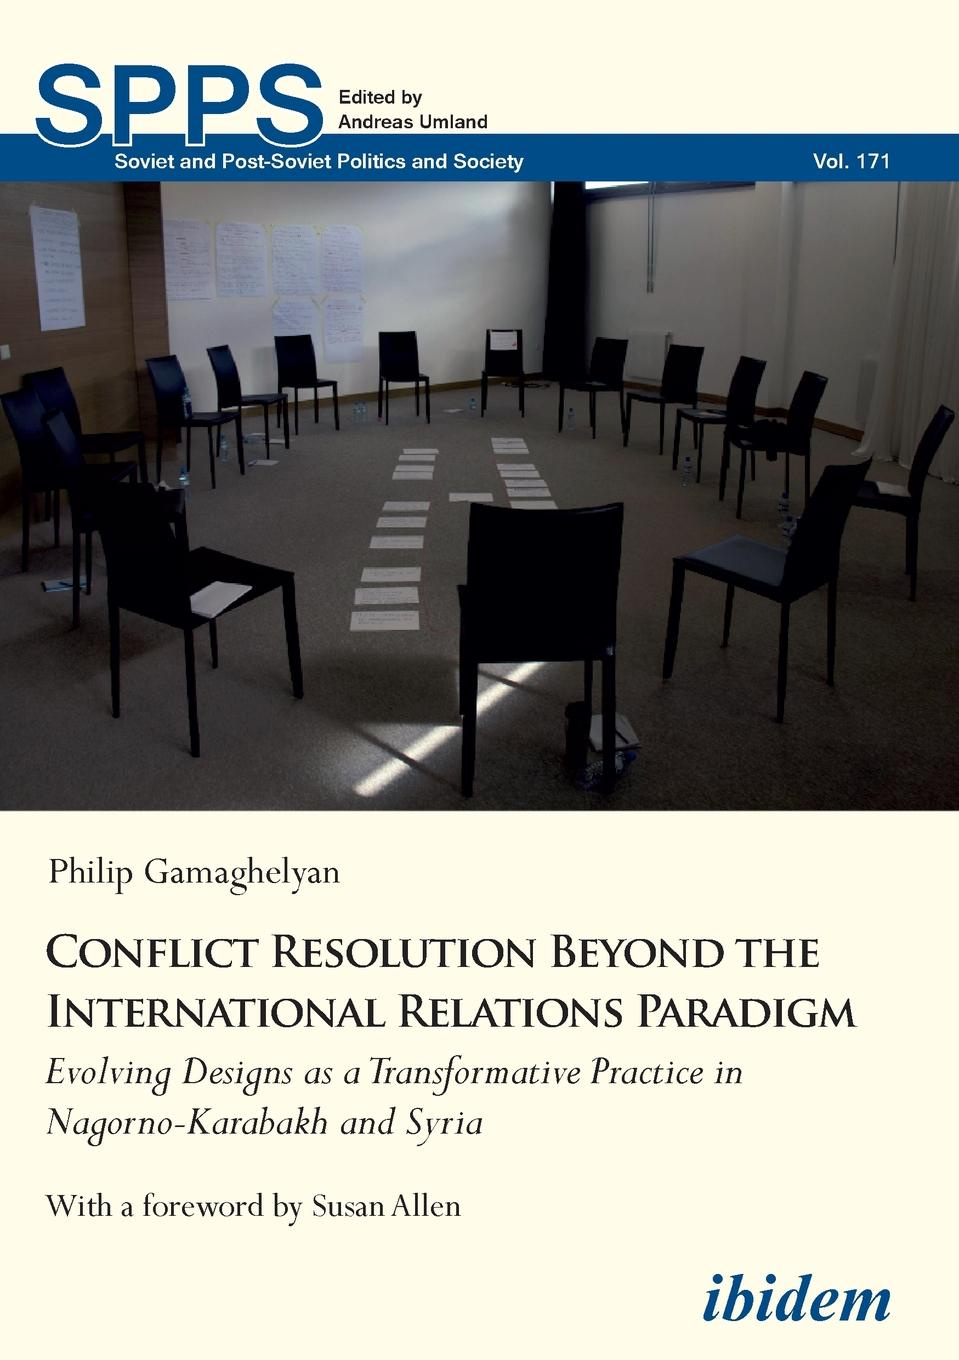 Philip Gamaghelyan Conflict Resolution Beyond the International Relations Paradigm. Evolving Designs as a Transformative Practice in Nagorno-Karabakh and Syria eu and nagorno karabakh